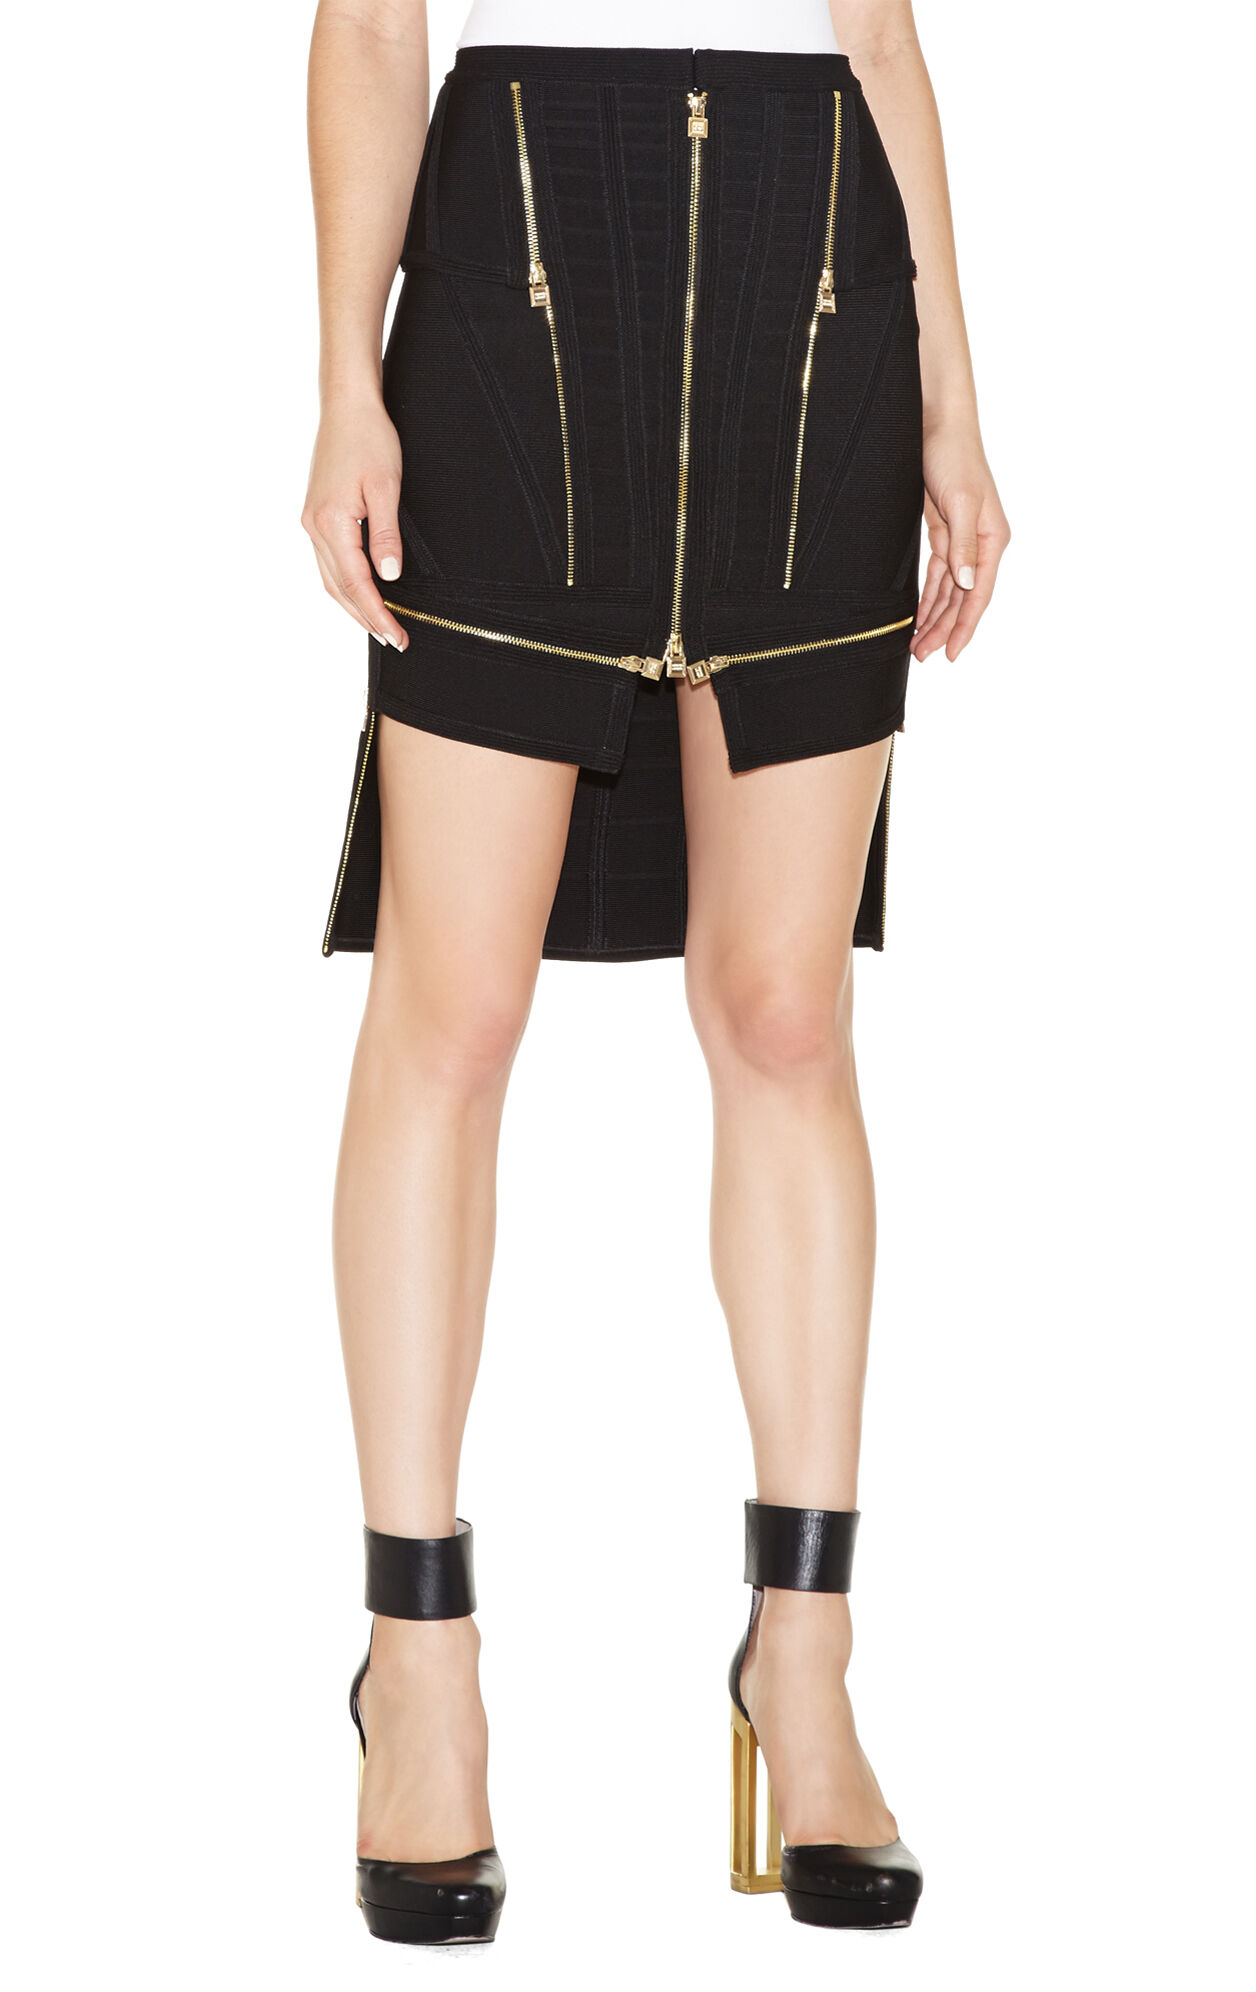 Ivan Zipper-Detailed Skirt